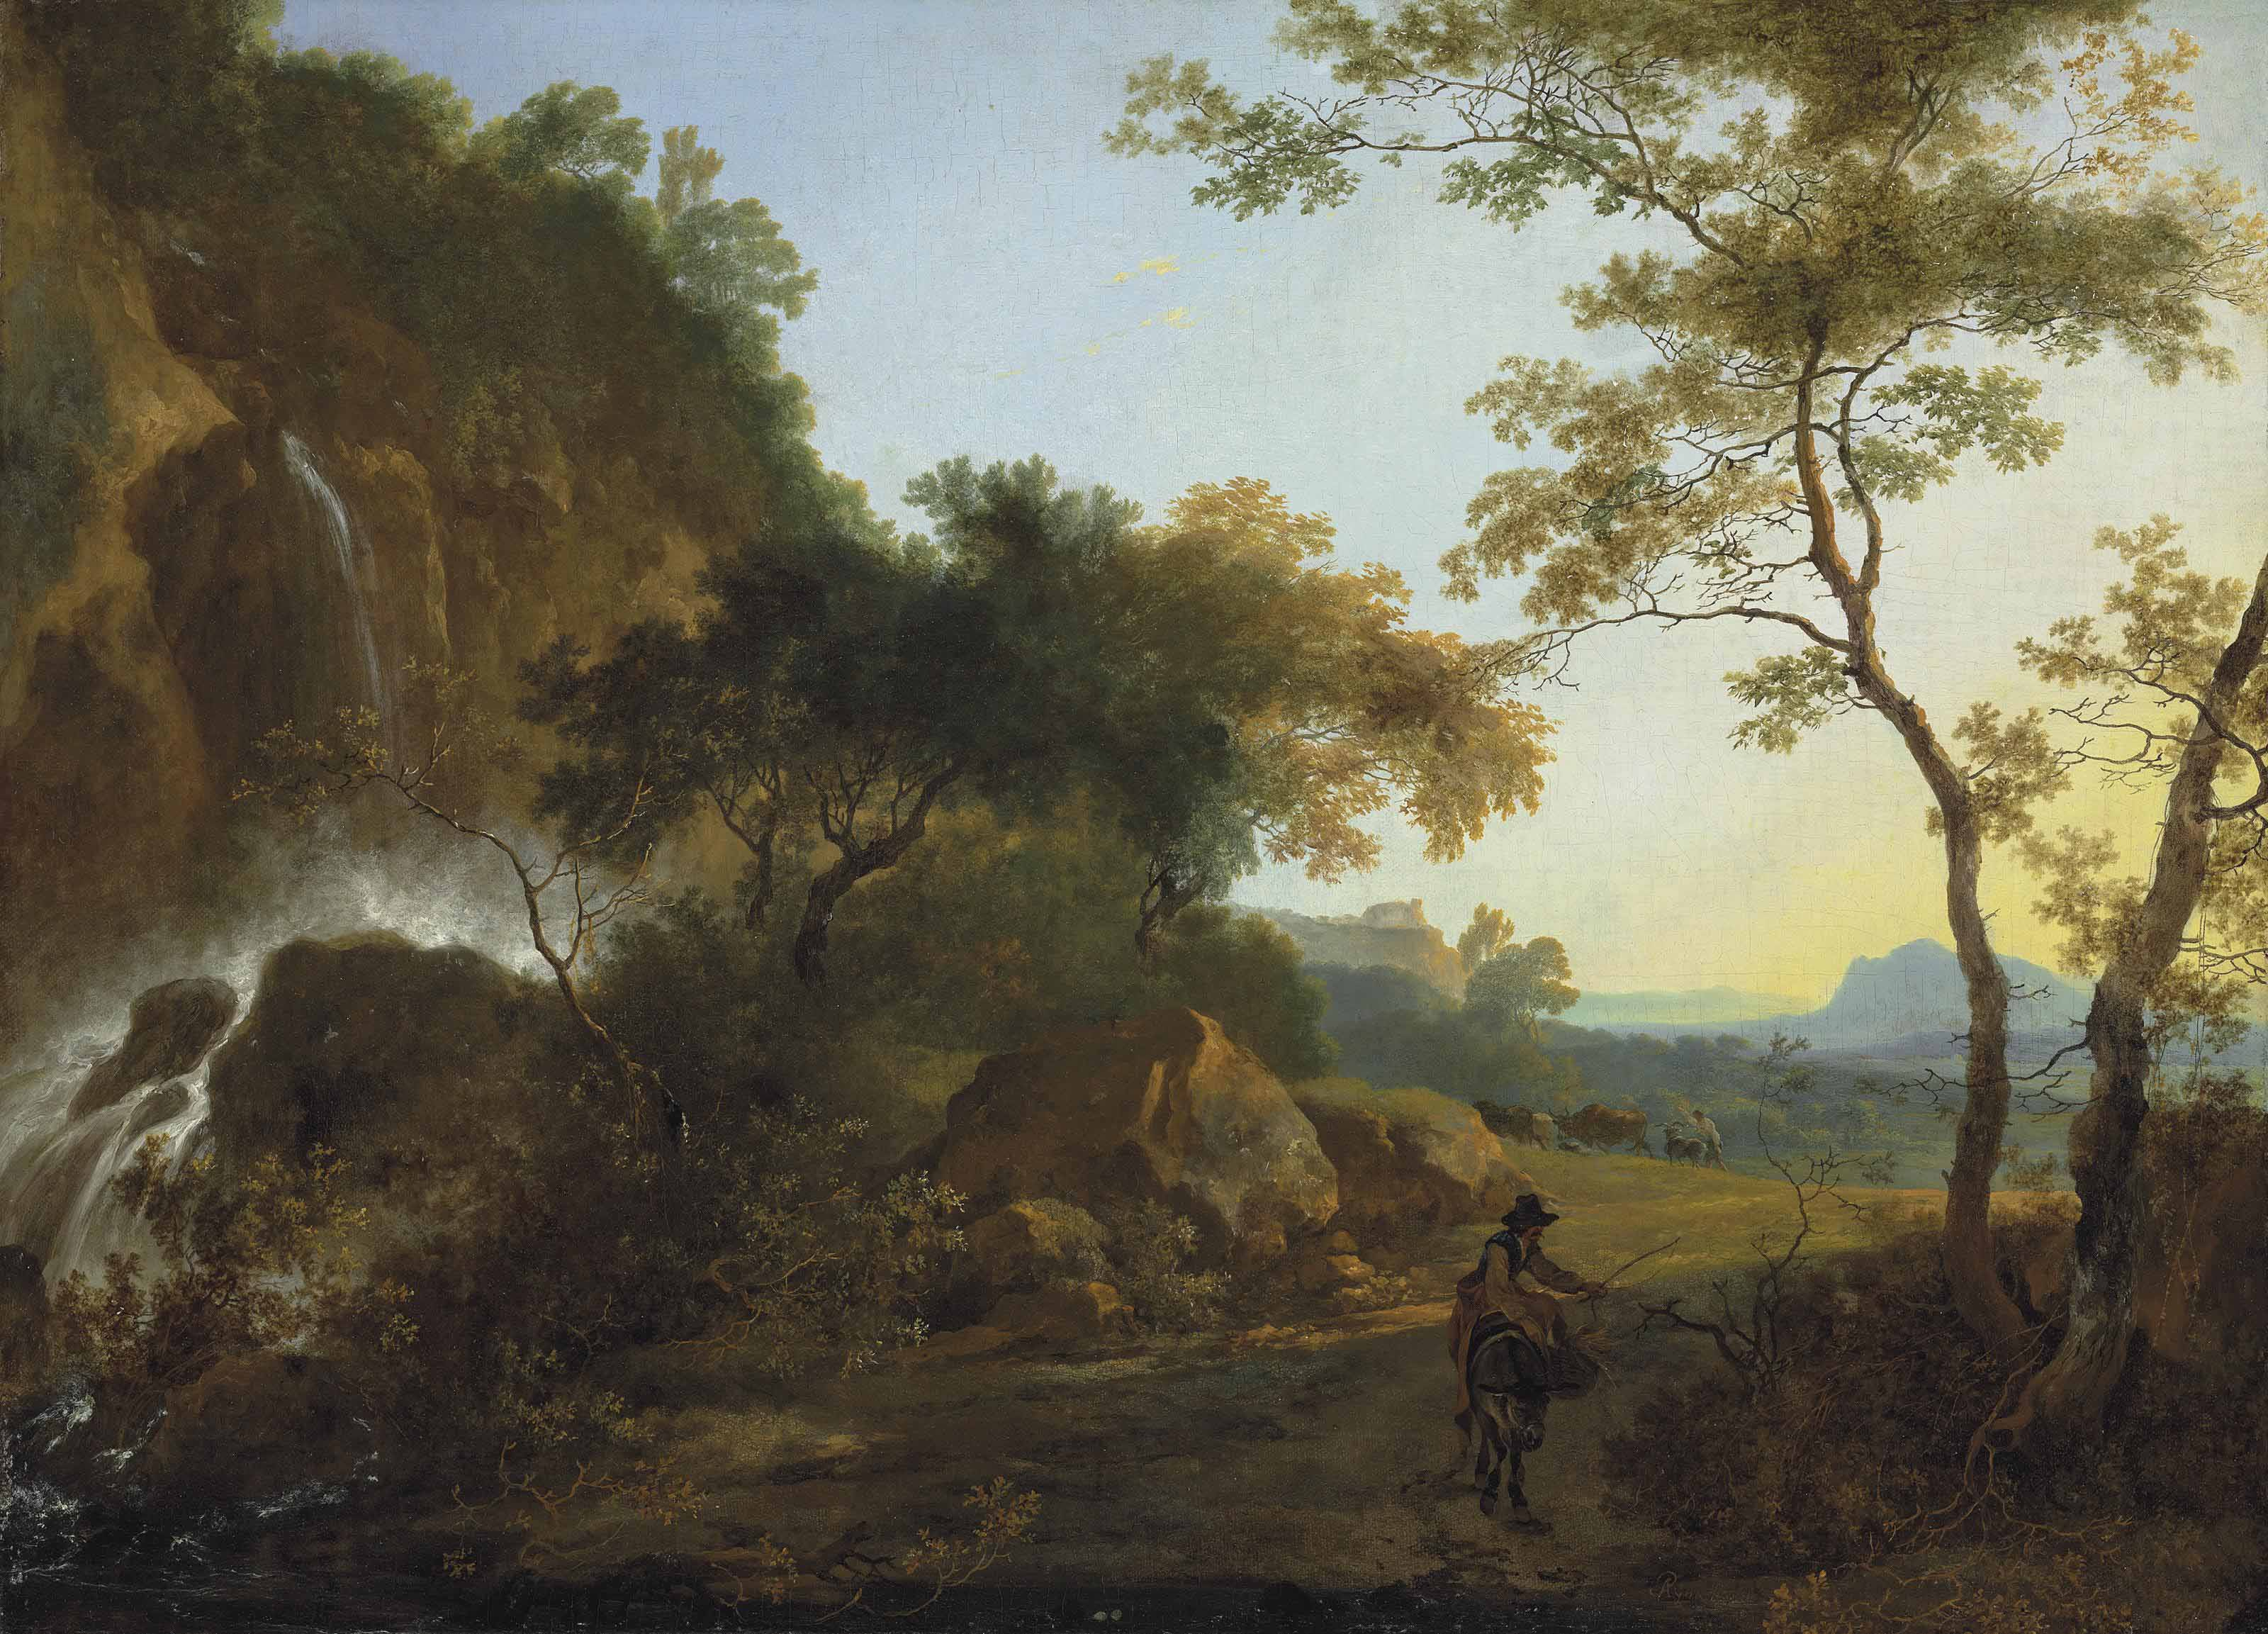 An Italianate landscape with a traveler on a path by a waterfall